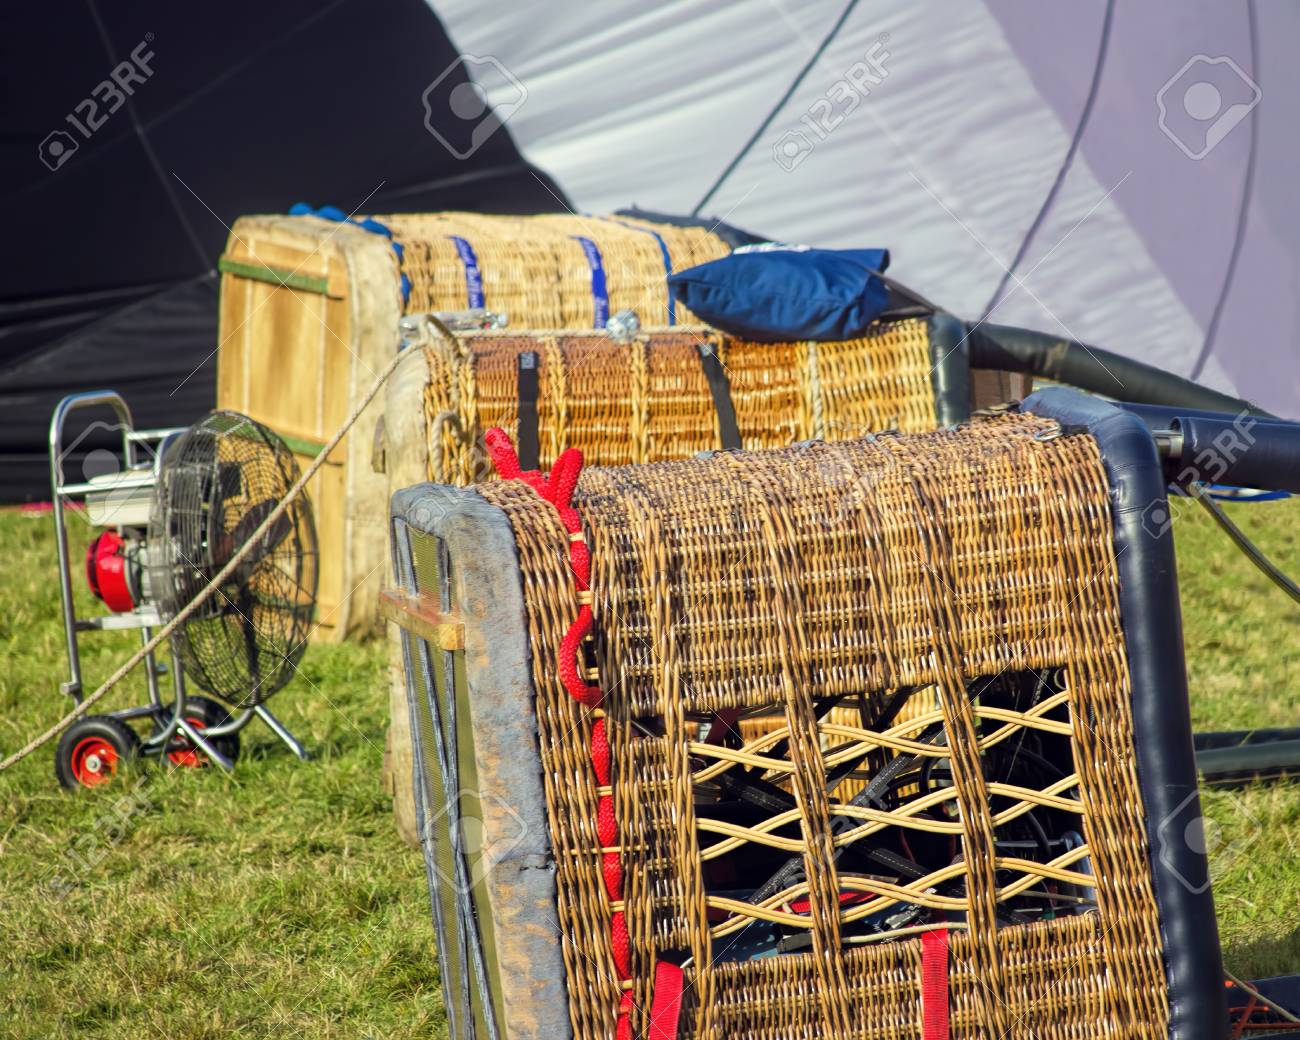 Hot Air Balloon Baskets Ready For Flying At Festival Stock Photo